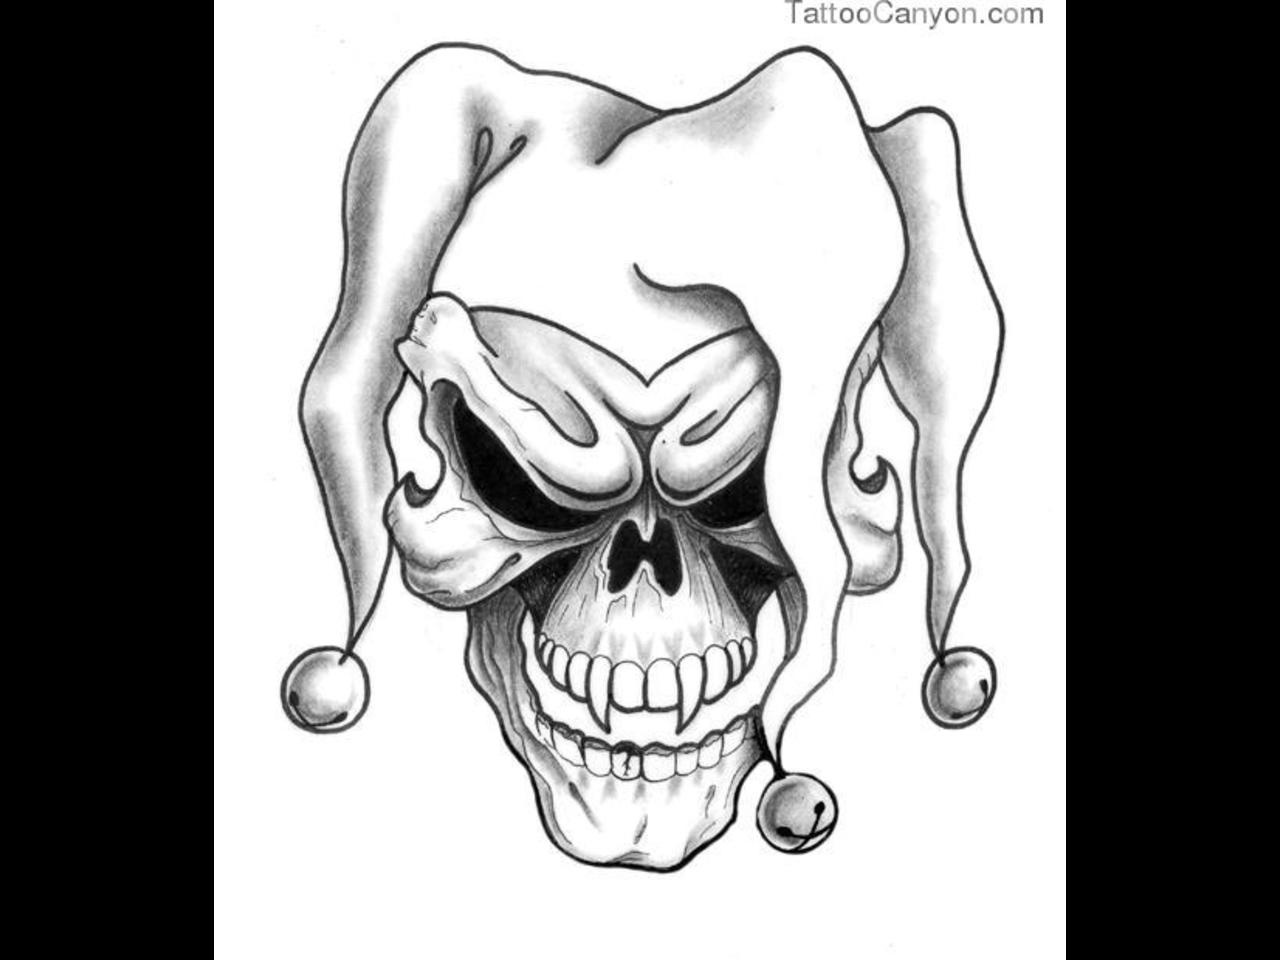 c8ee1e1b580b1 1280x960 Joker Tattoo Designs, Ideas, Pictures And Images - Joker Tattoo  Drawing